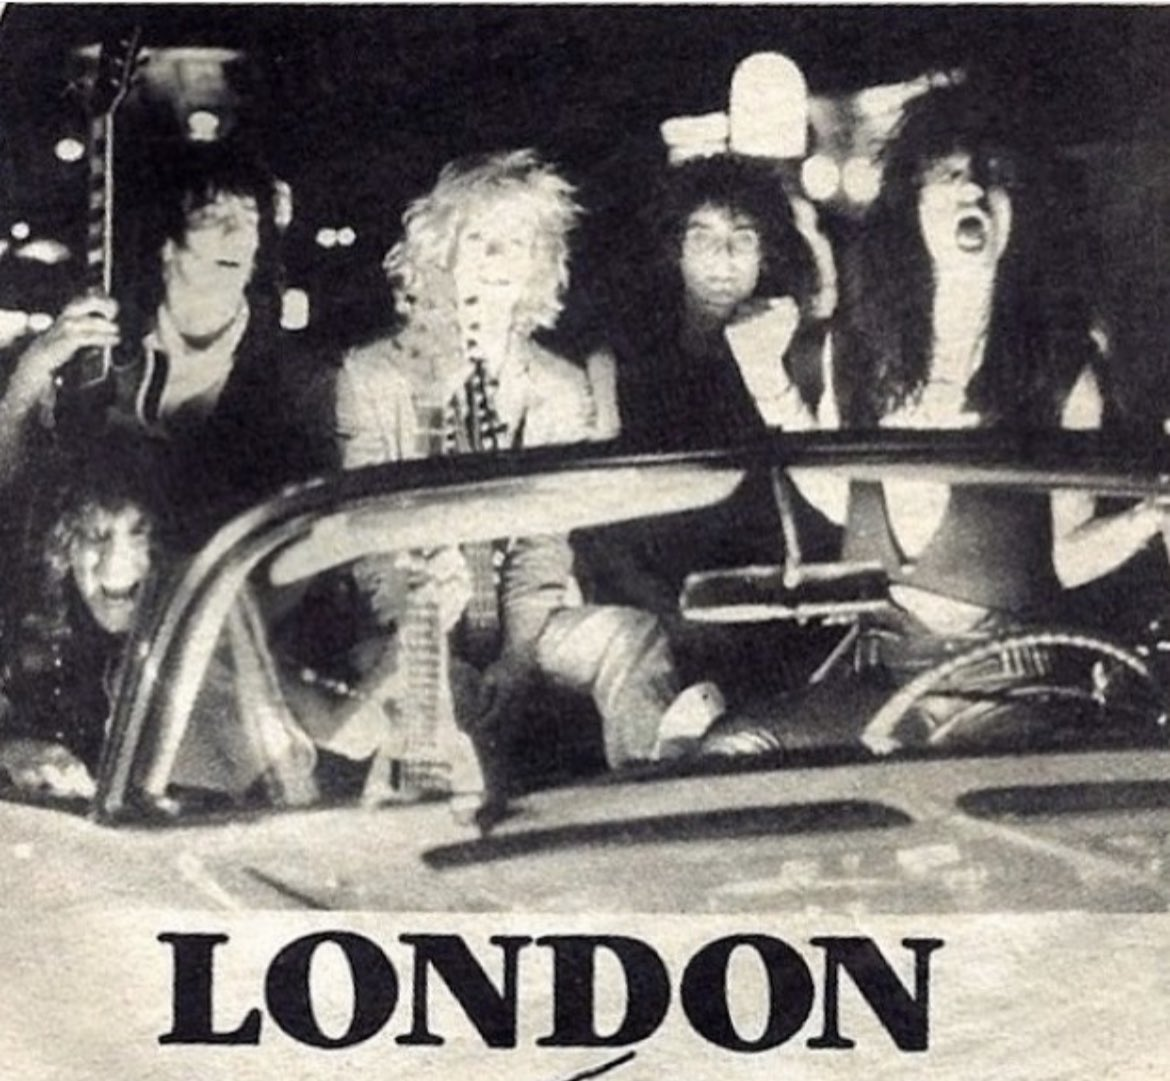 Happy Birthday to Izzy Stradlin former member of LONDON and G&R born today in 1962.